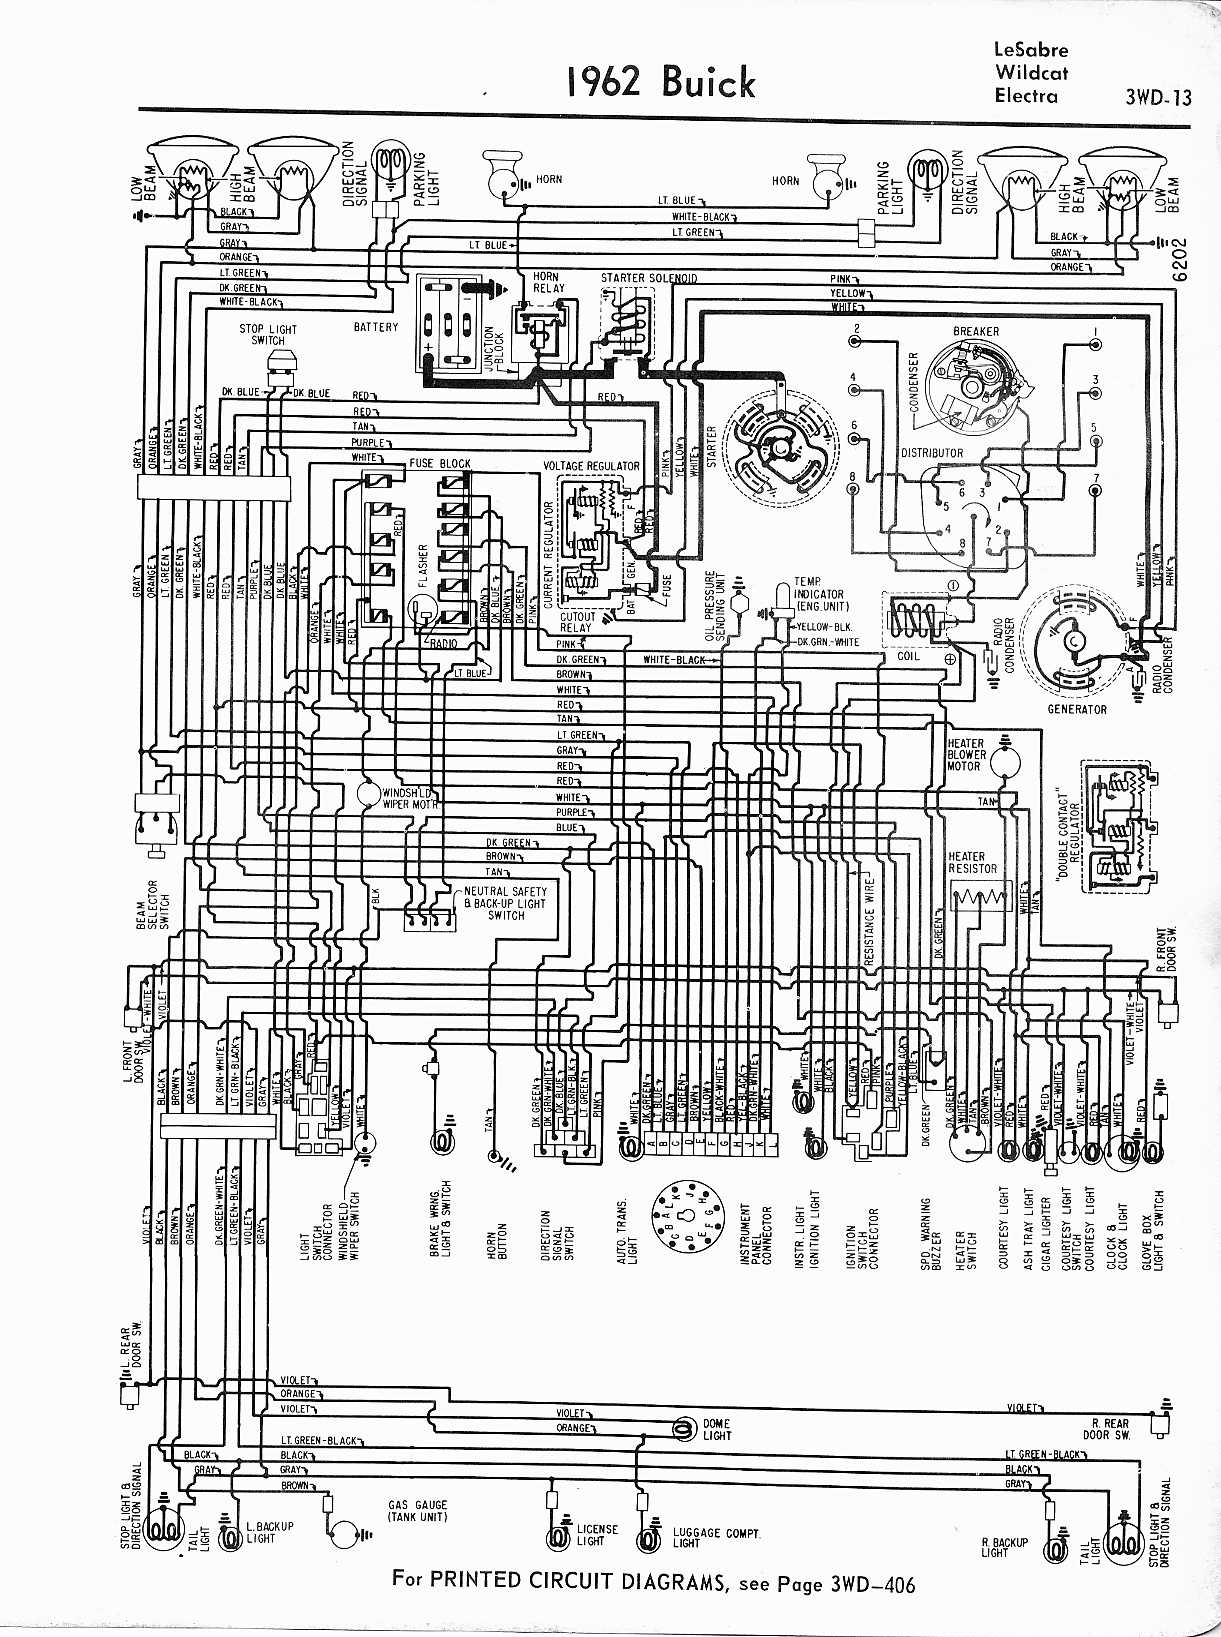 [DIAGRAM_1CA]  3369207 1966 Chrysler New Yorker Wiring Diagram | Wiring Resources | 1966 Chrysler New Yorker Wiring Diagram |  | Wiring Resources